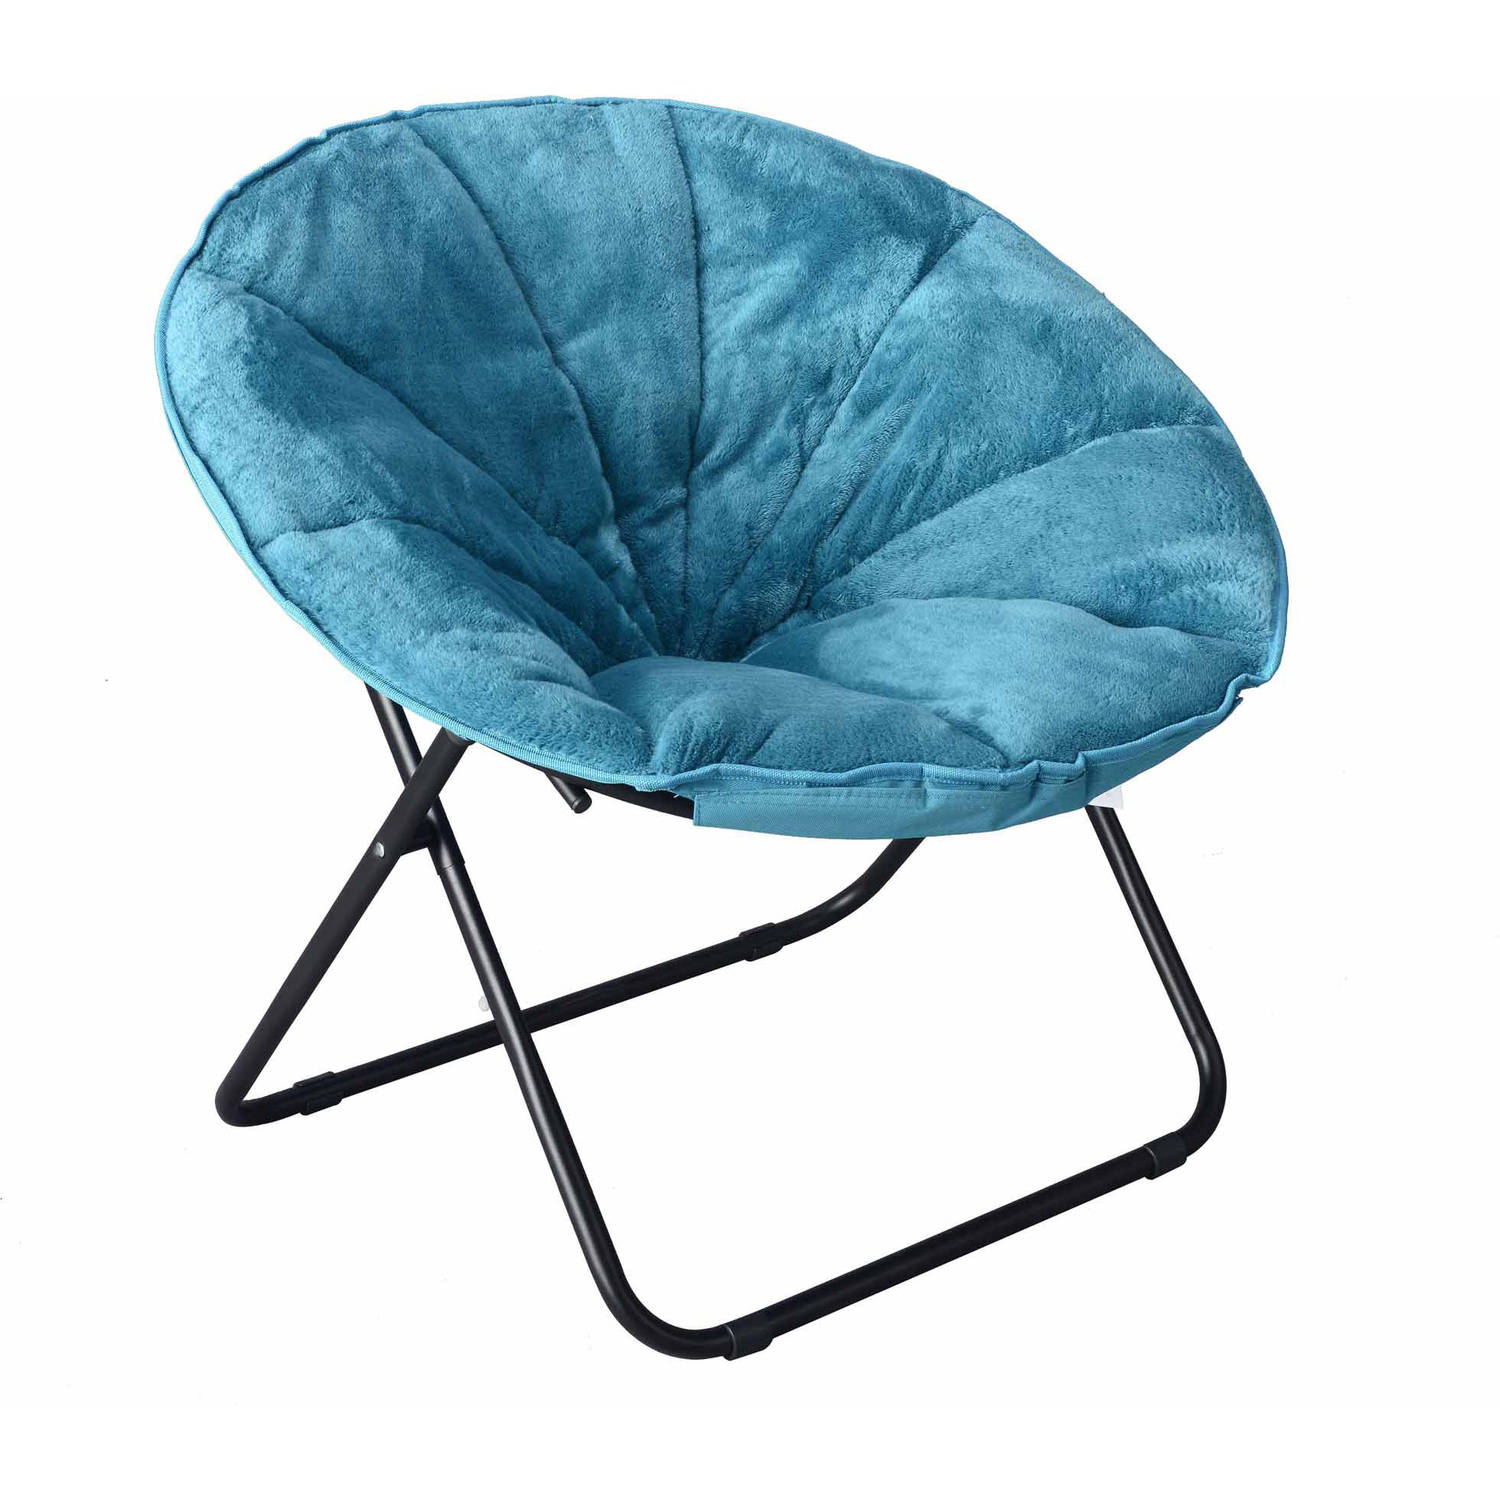 "Mainstays Plush Saucer Chair, Multiple Colors - 30""W x 26.4""D x 28""H"